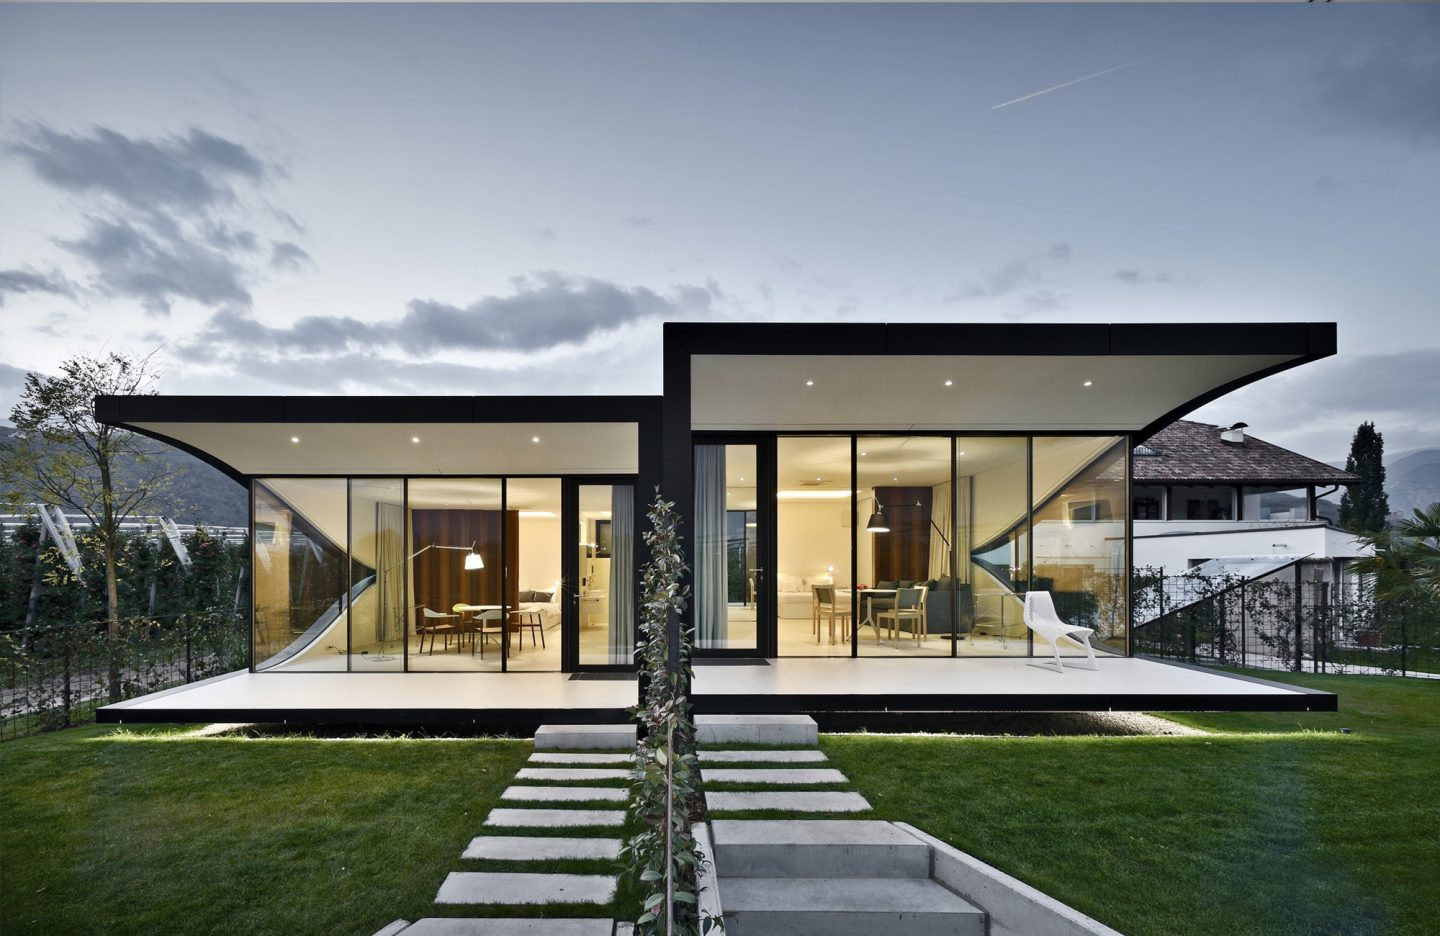 IGNANT-Architecture-South-Tyrol-Mirror-Houses-05 copy